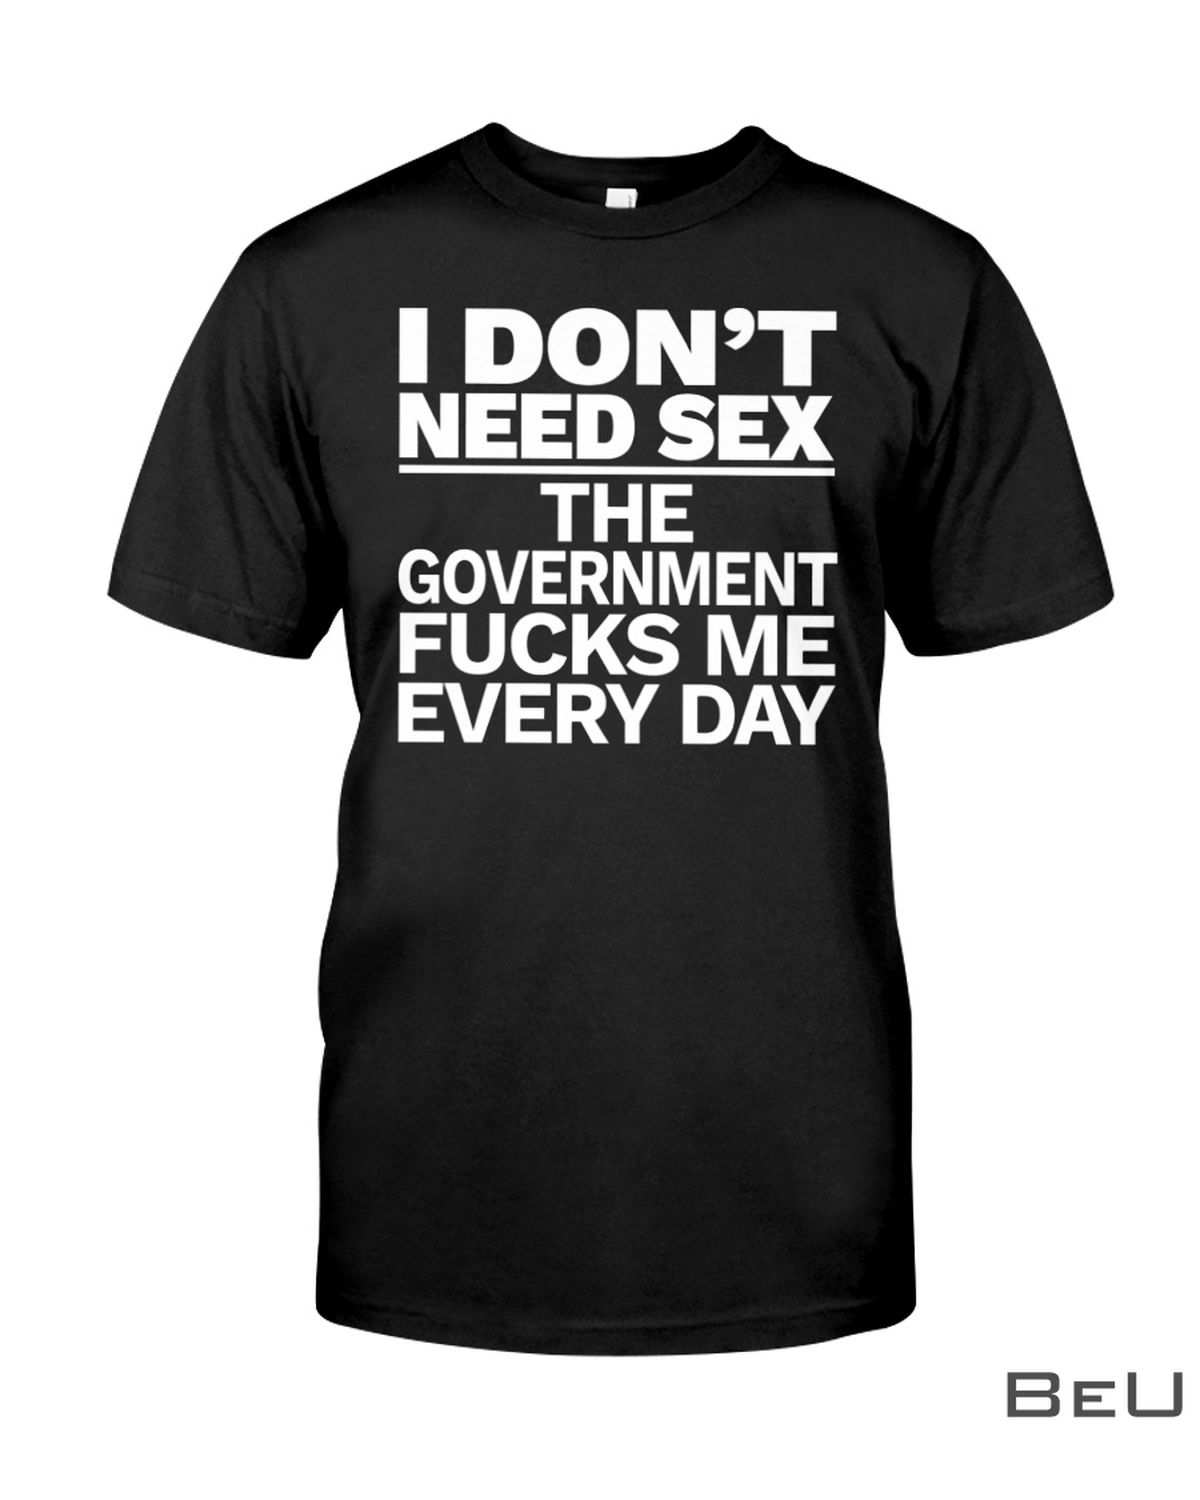 I Don't Need Sex The Government Fucks Me Everyday Shirt, hoodie